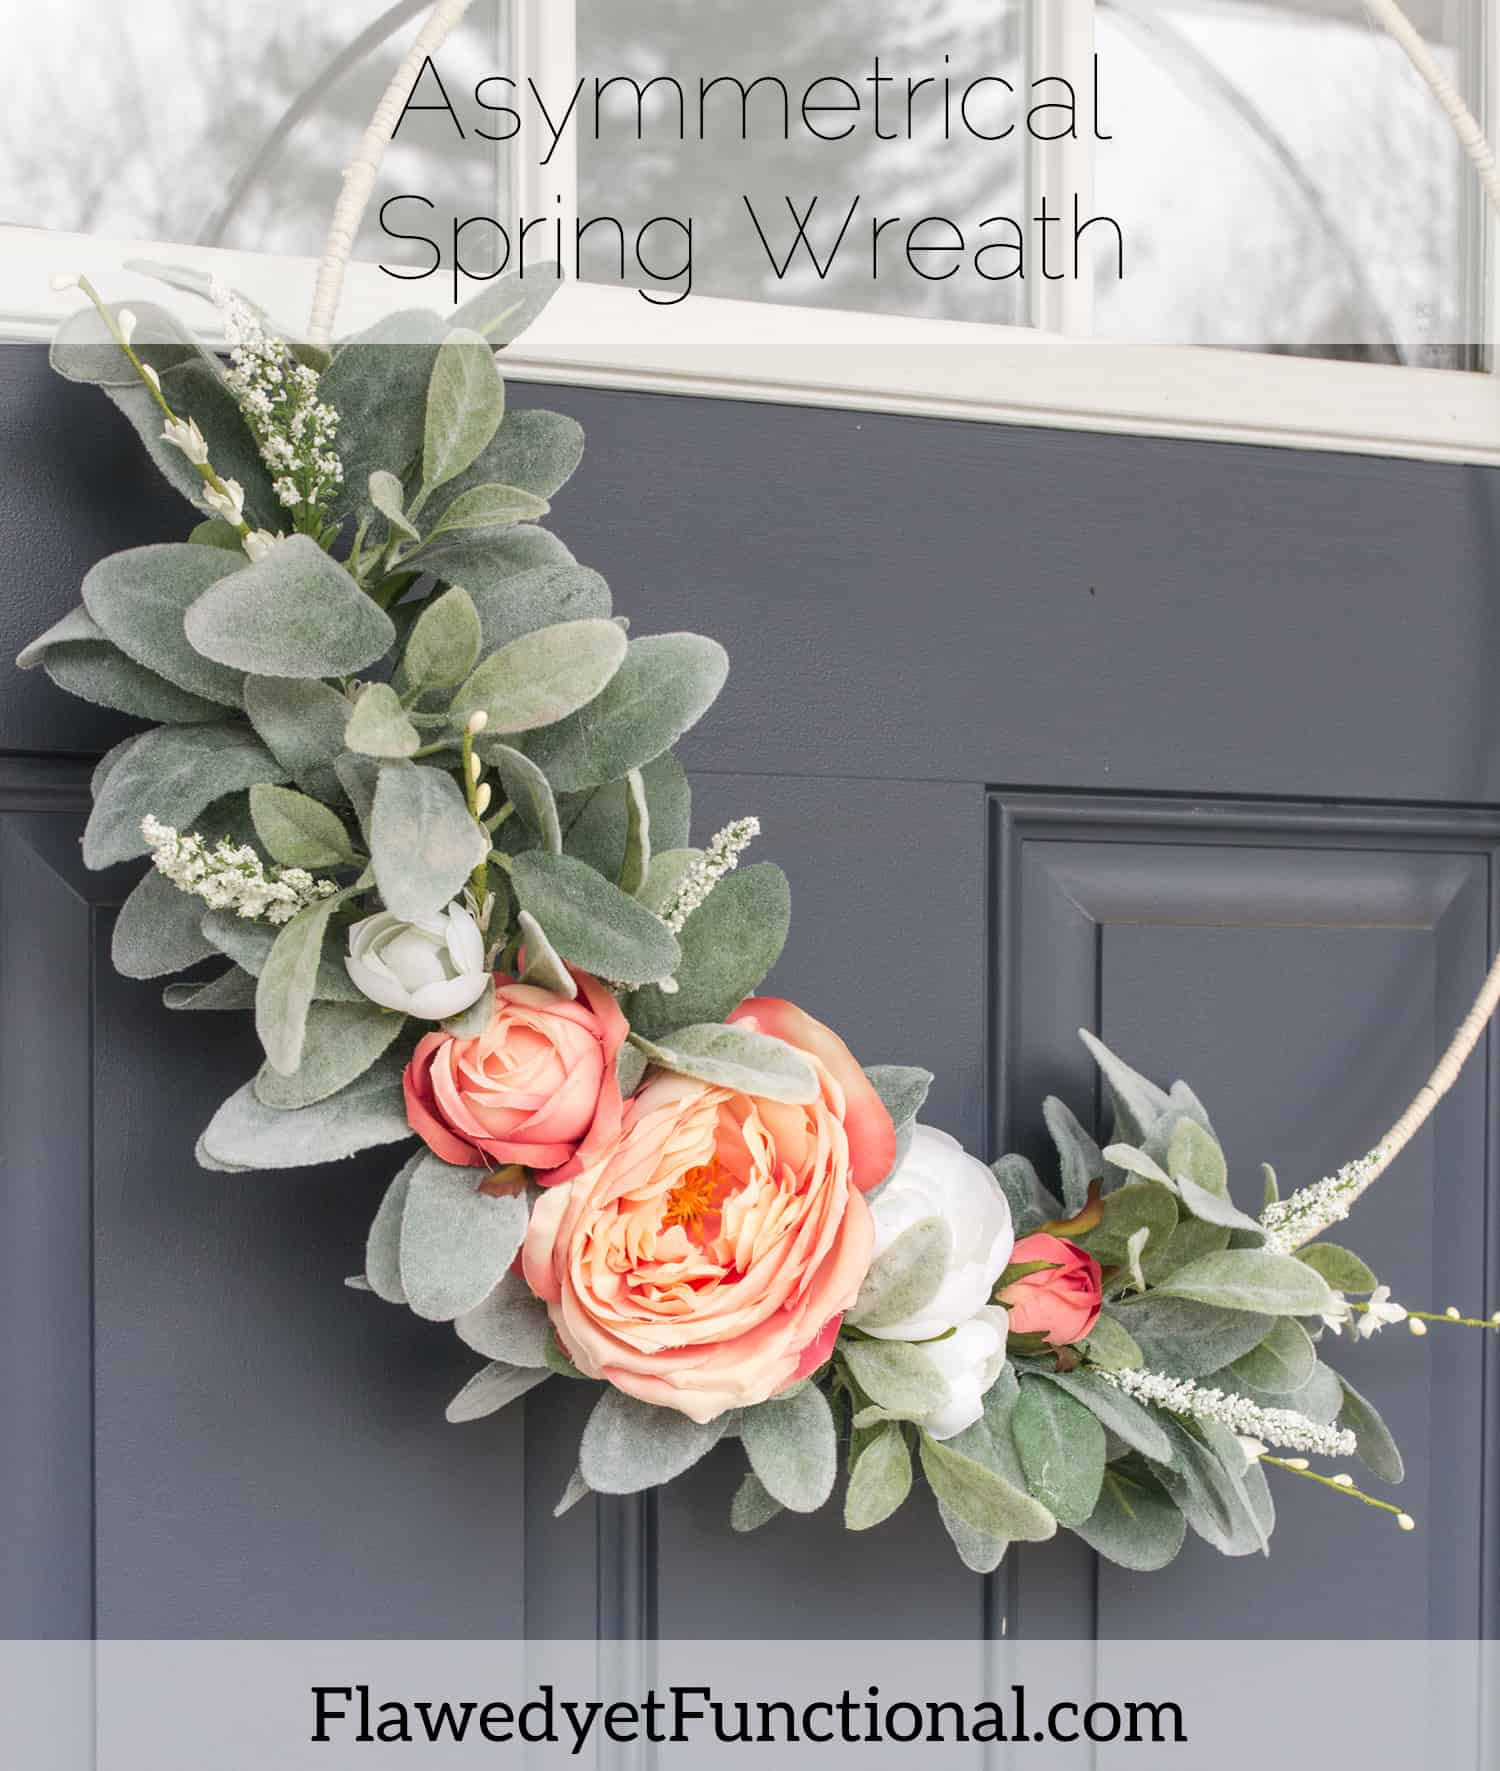 Asymmetrical Spring Wreath_2